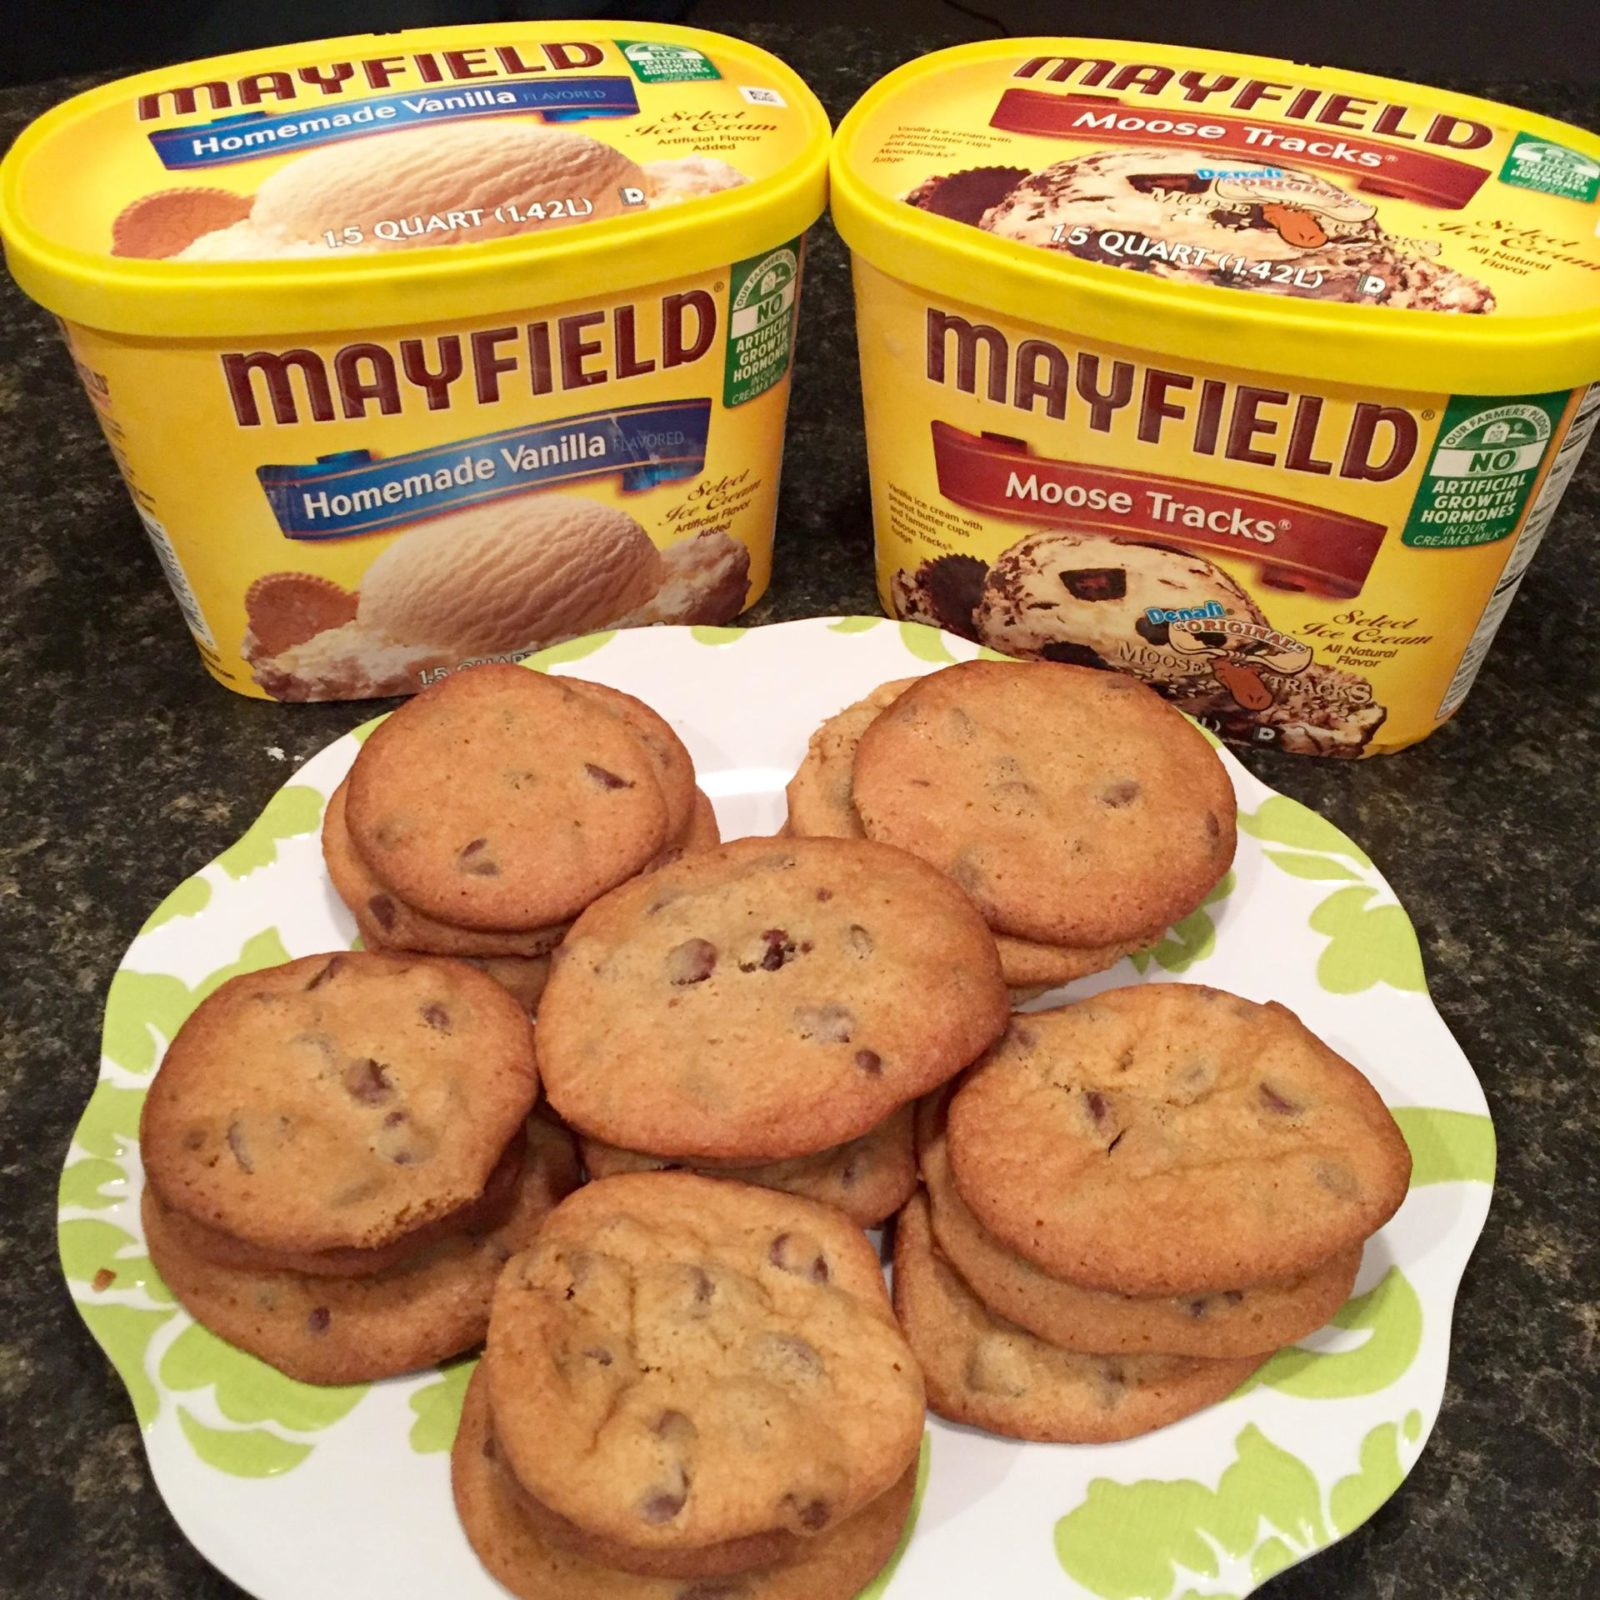 Mayfield-Ice-Cream-Cookies